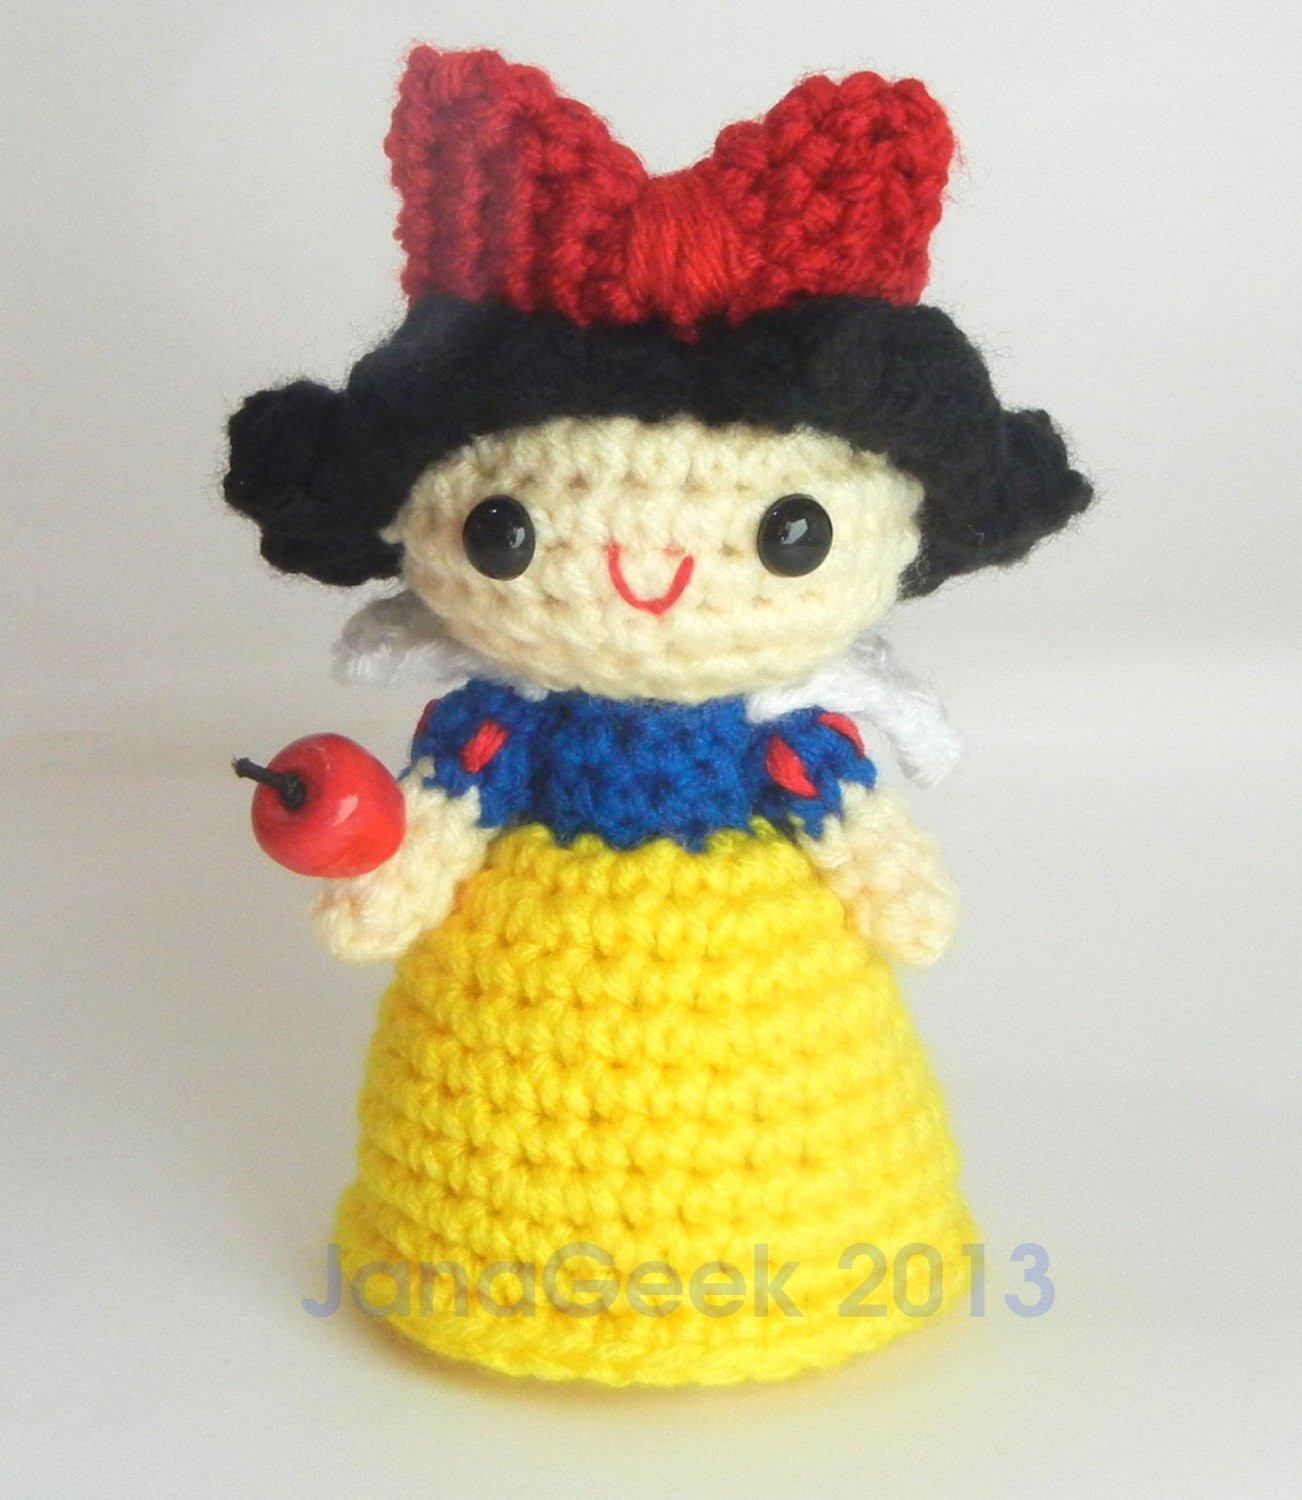 Snow White Doll Crochet Pattern